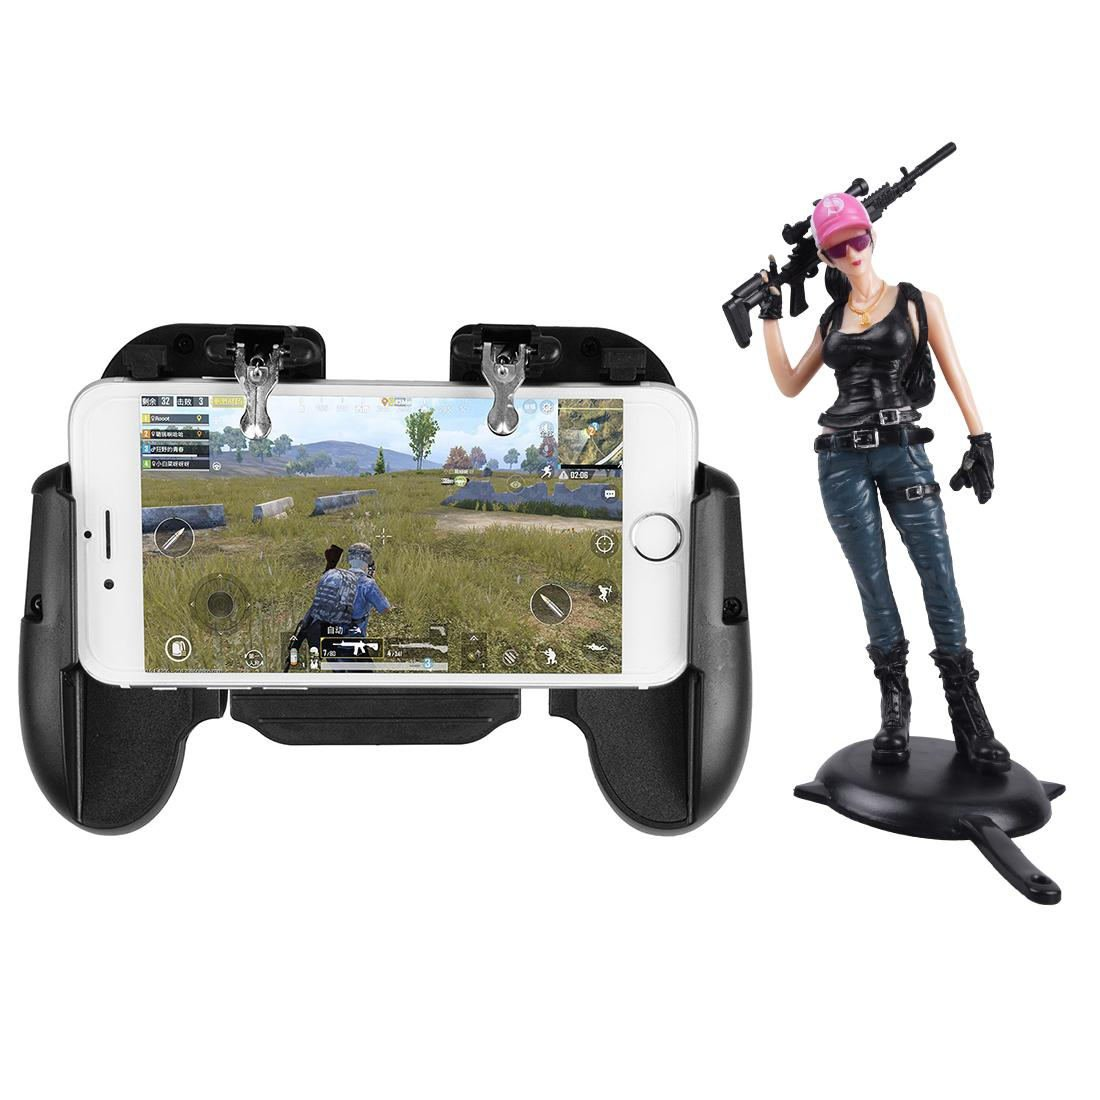 H5 Phone Game Trigger Handle Grip With Fan Black + Figure Pink Cap Girl